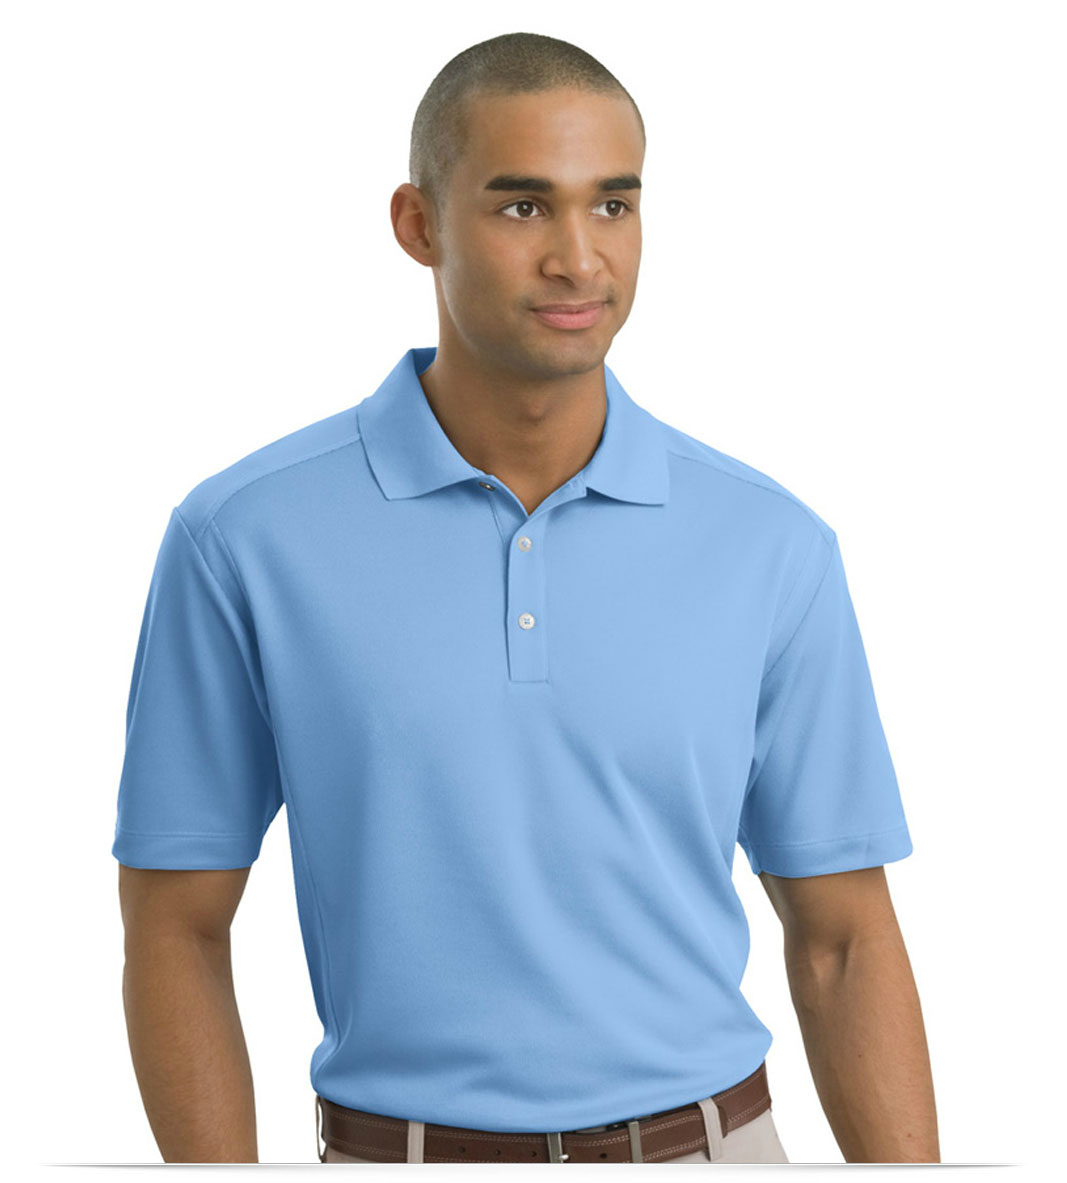 Embroidered Nike Golf Shirt Customized With Your Logo At Allstar Logo